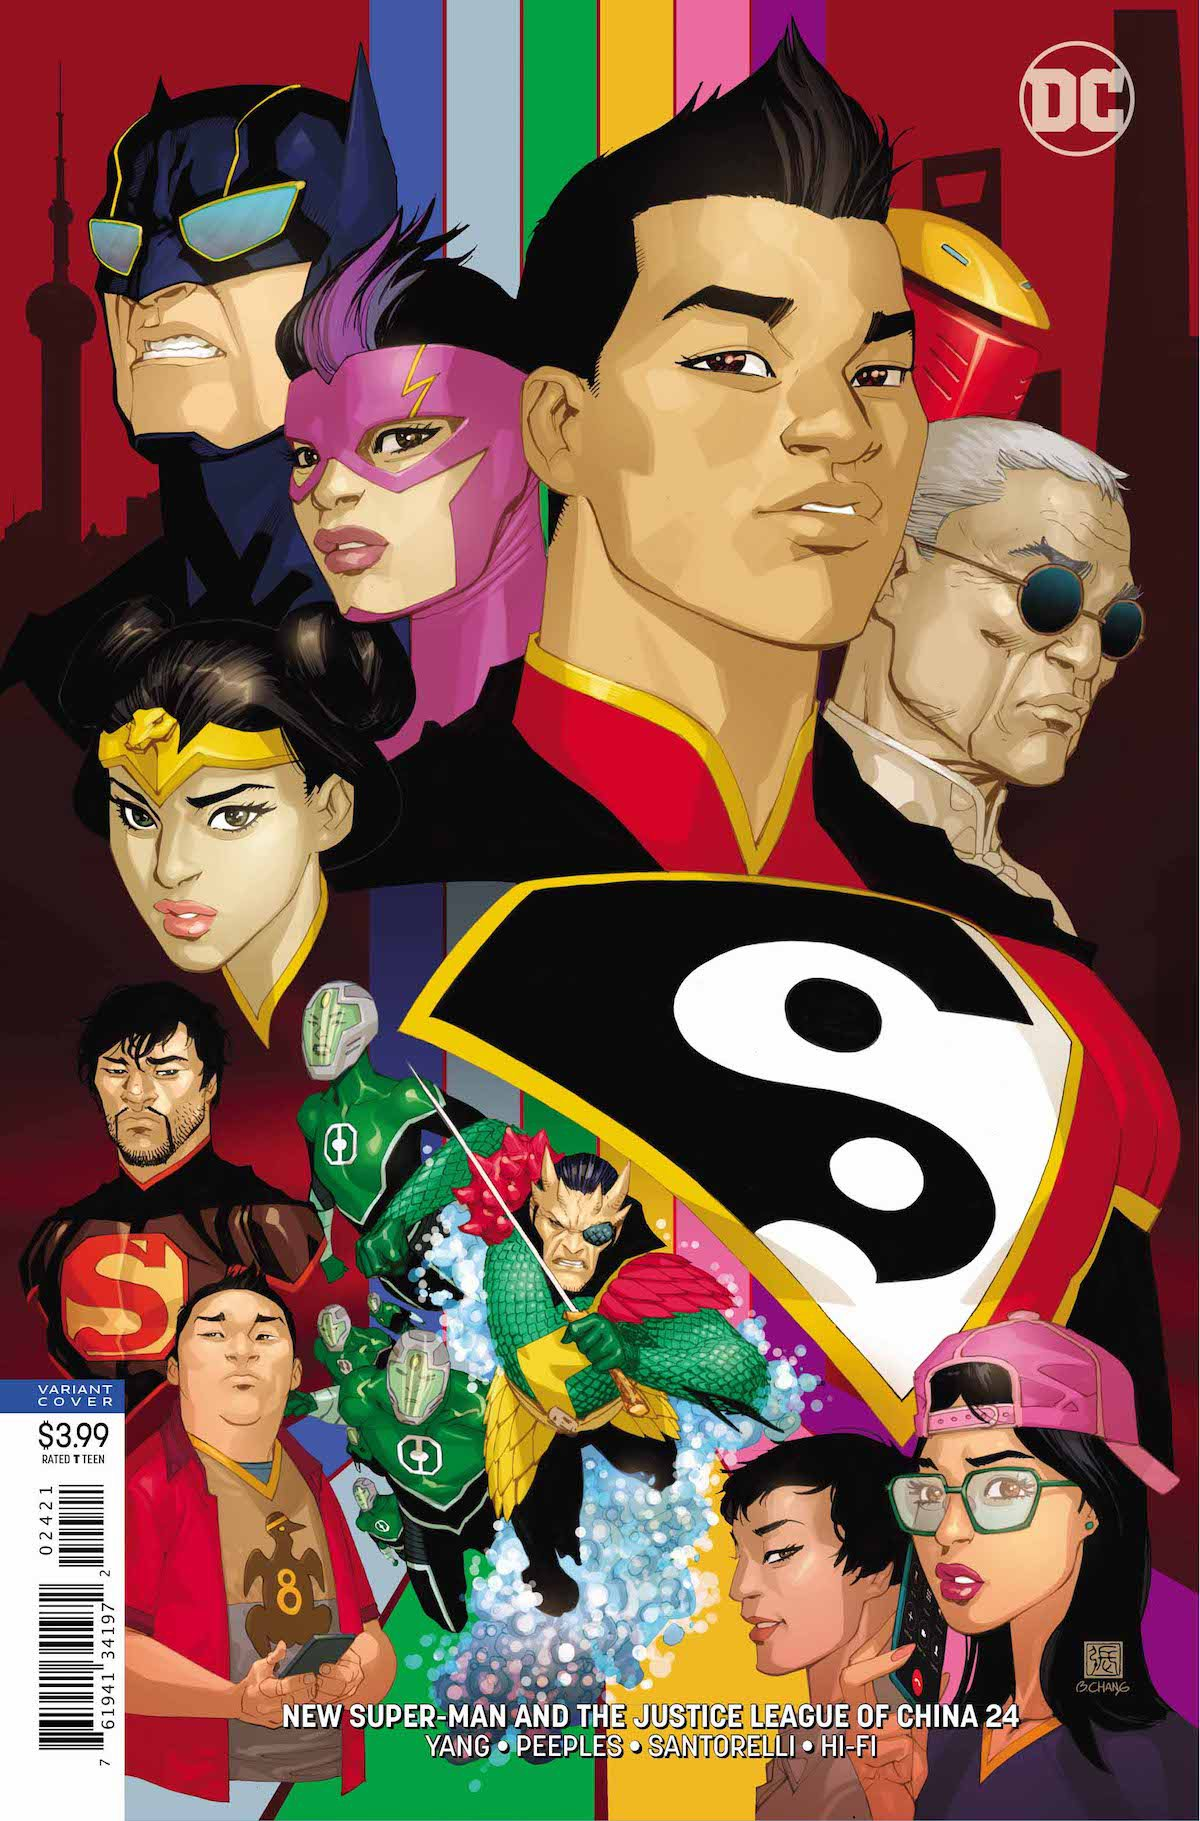 New Super-Man and the Justice League of China #24 variant cover